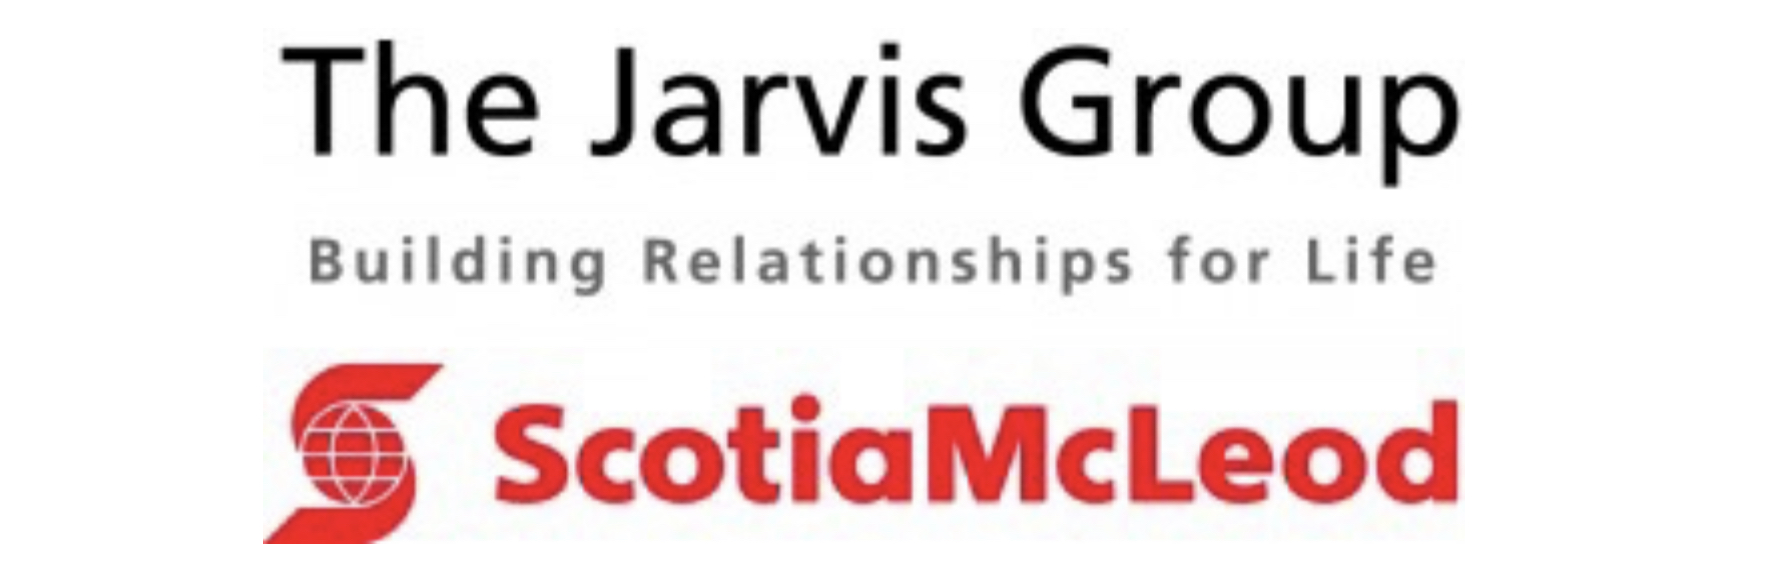 The Jarvis Group